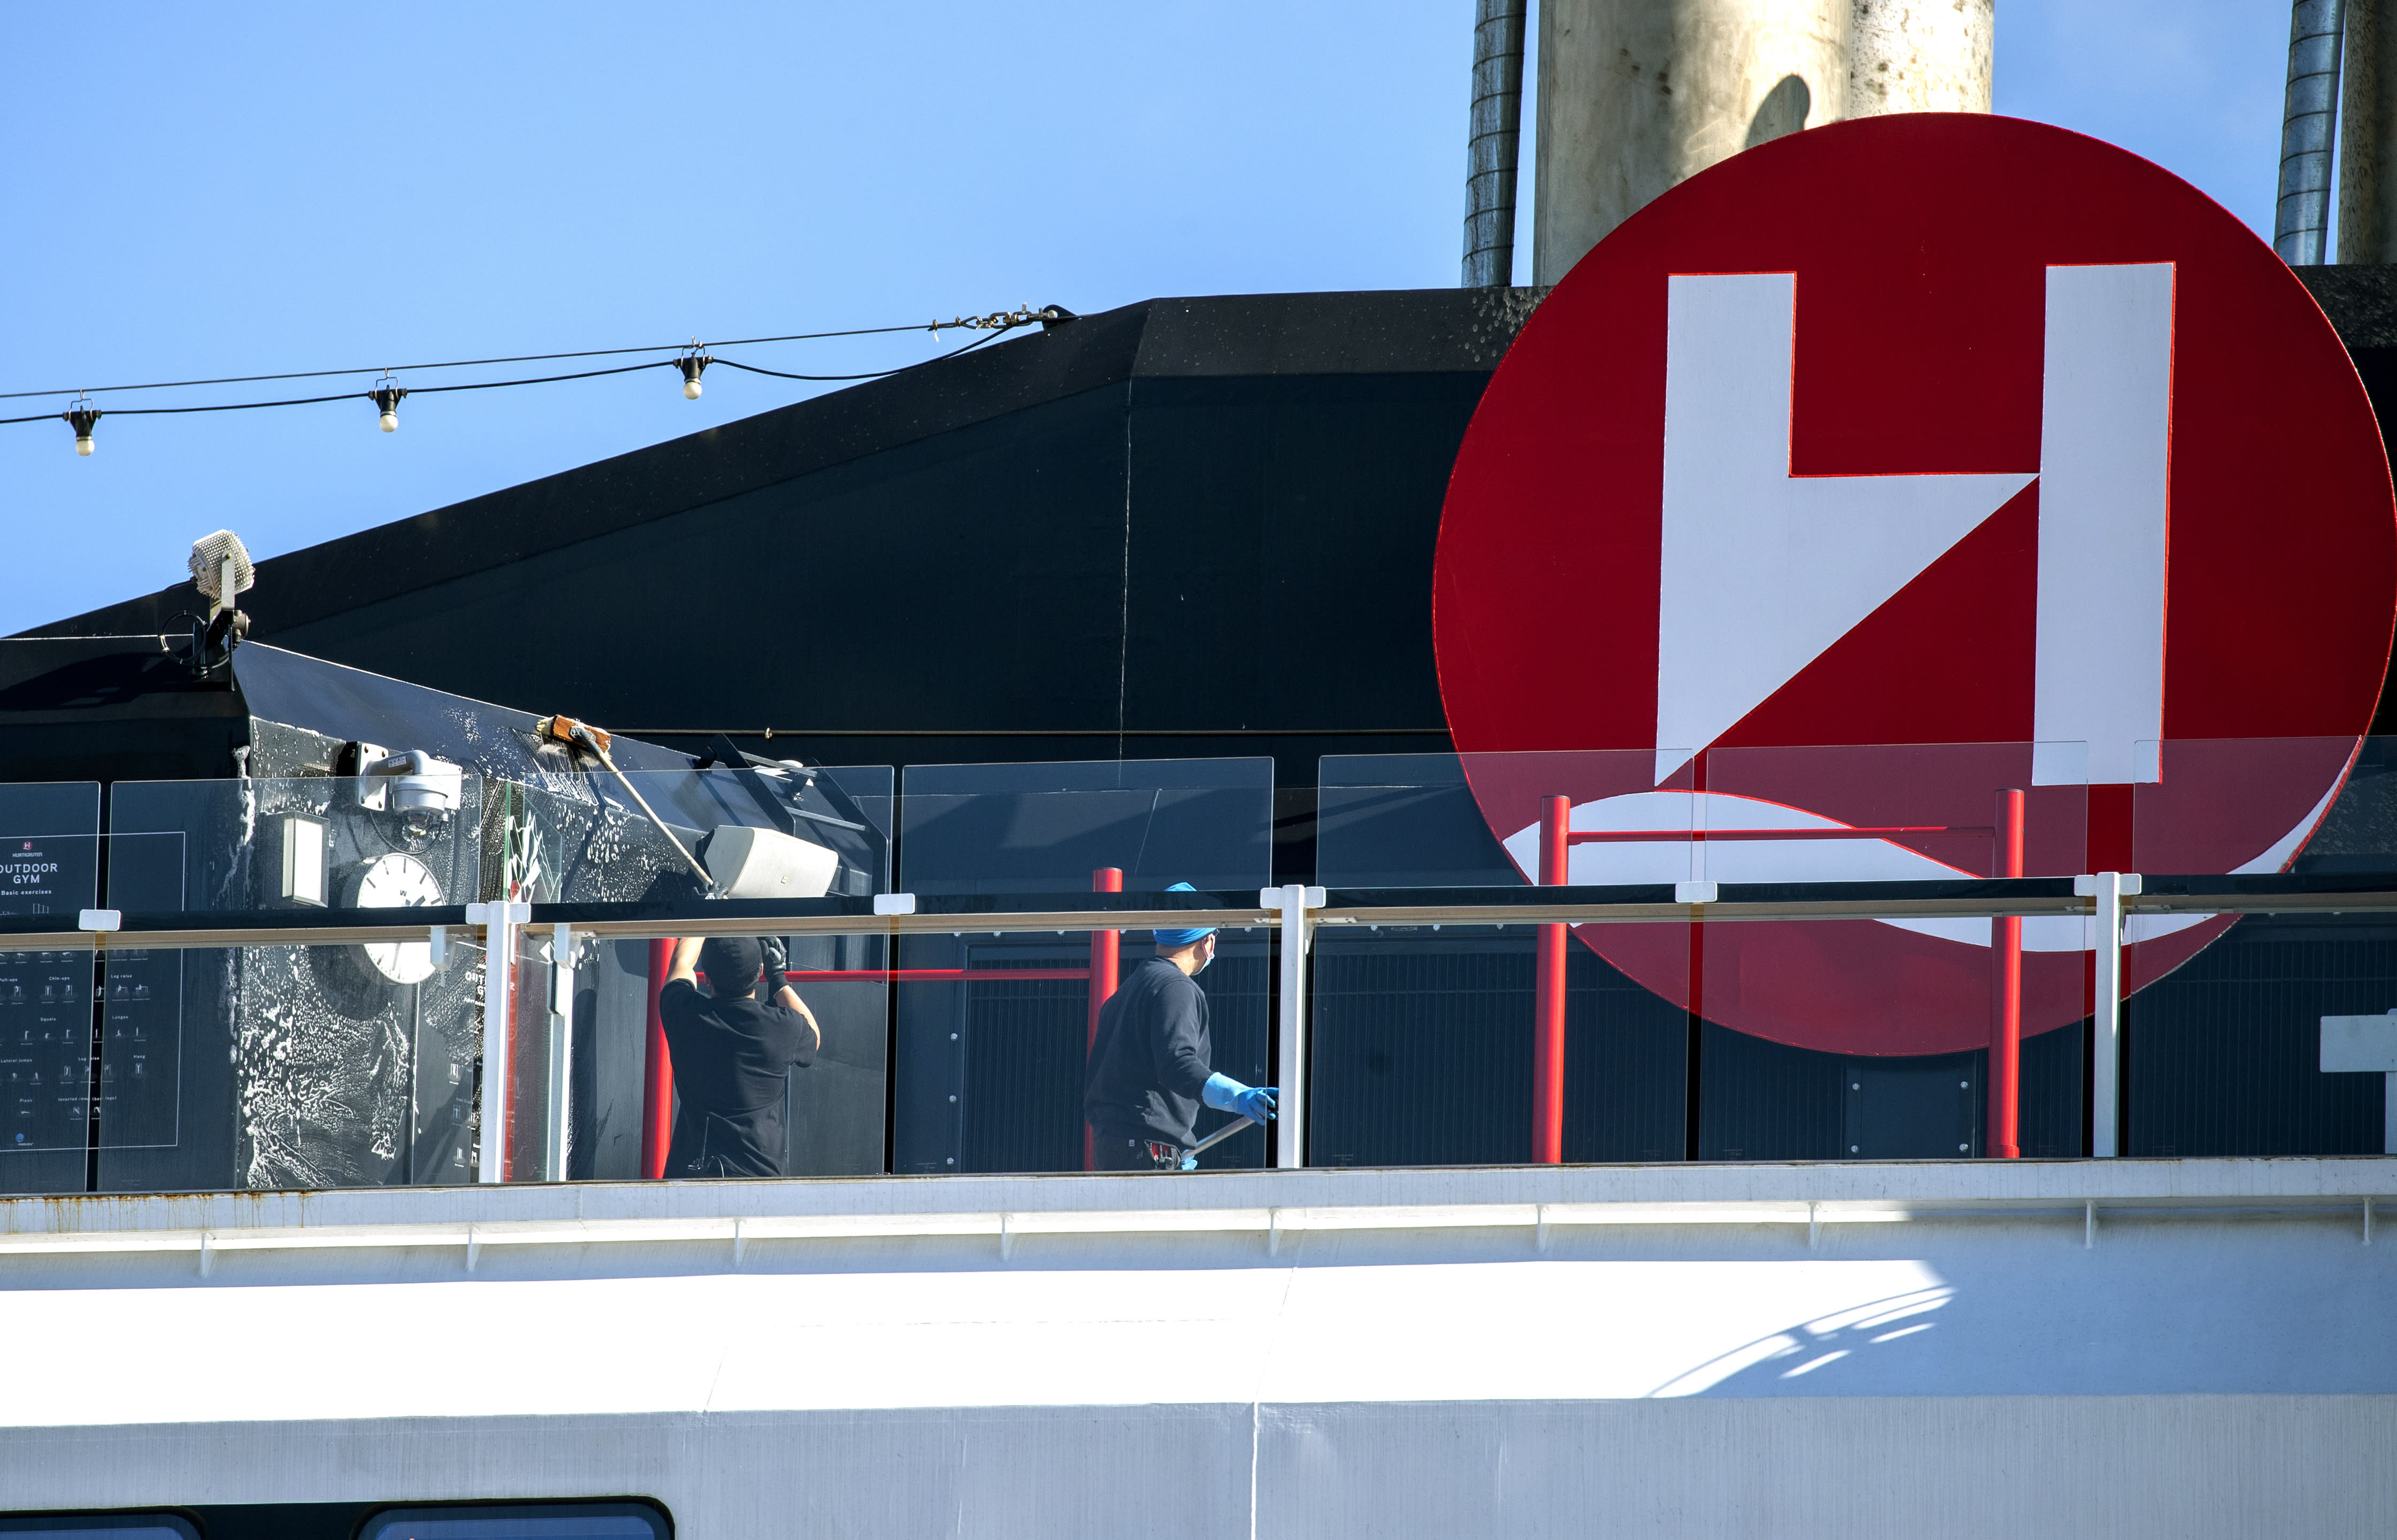 Crew members clean on board Hurtigruten's vessel MS Roald Amundsen, docked in Tromso, Norway, Sunday, Aug. 2, 2020. Over 30 crew members and an unconfirmed number of passengers have so far tested positive for the coronavirus after two international cruises which resumed operation recently, since the outbreak of the coronavirus pandemic. (Terje Pedersen/NTB scanpix via AP)